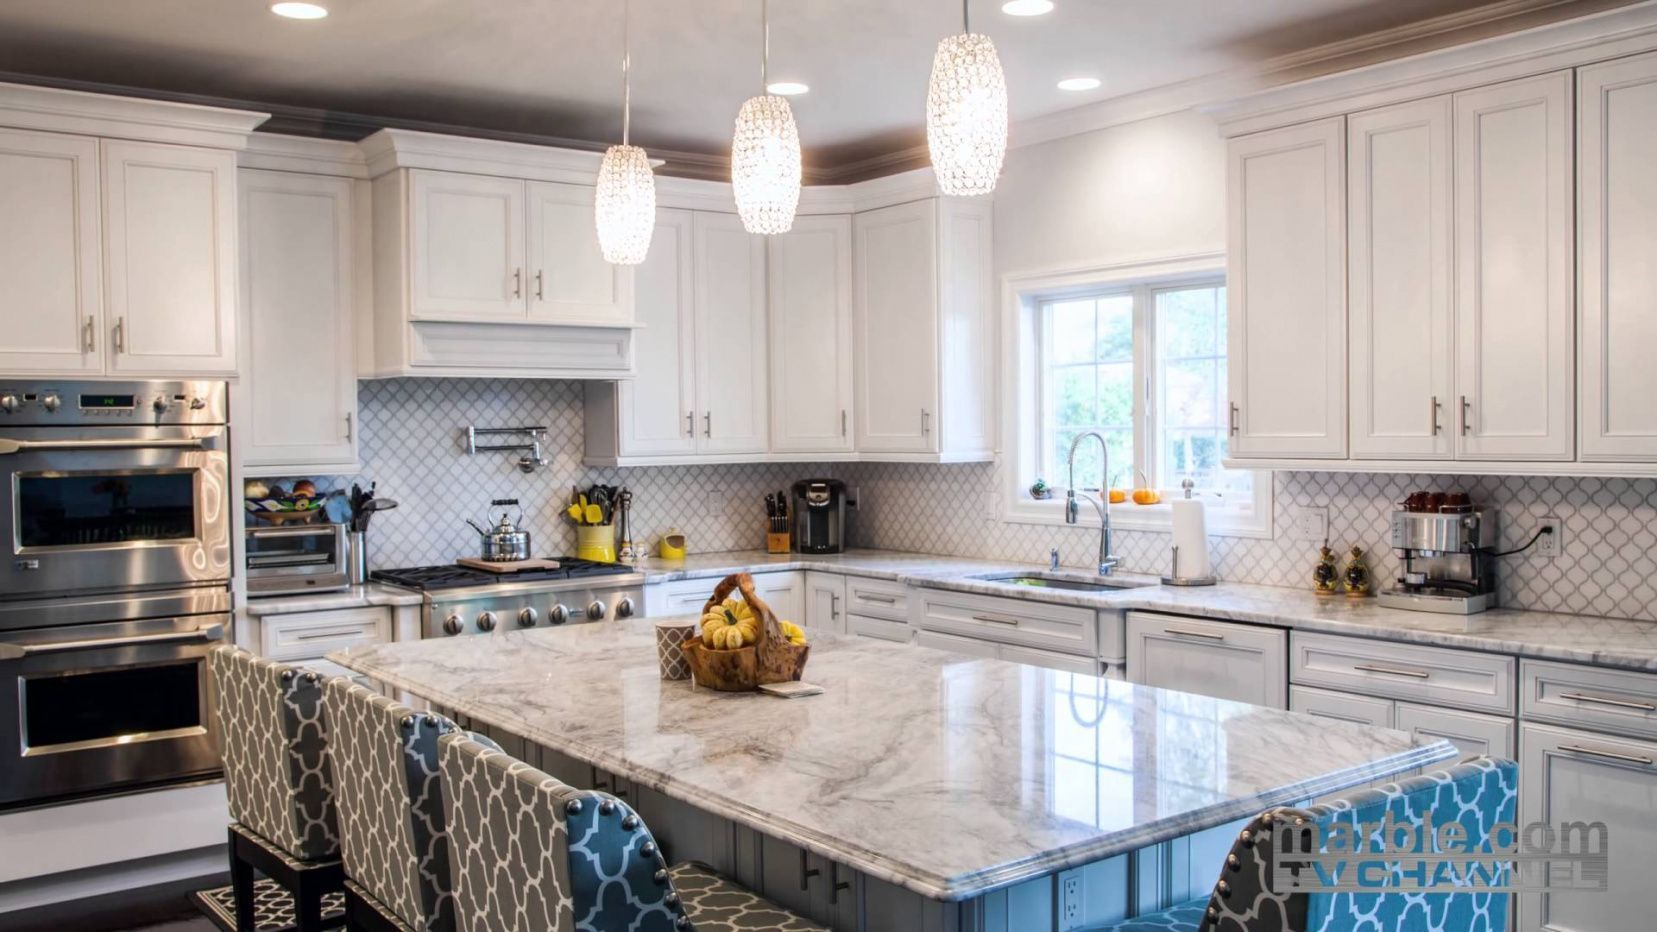 Pin by top home decor design ideas on kitchen ideas in